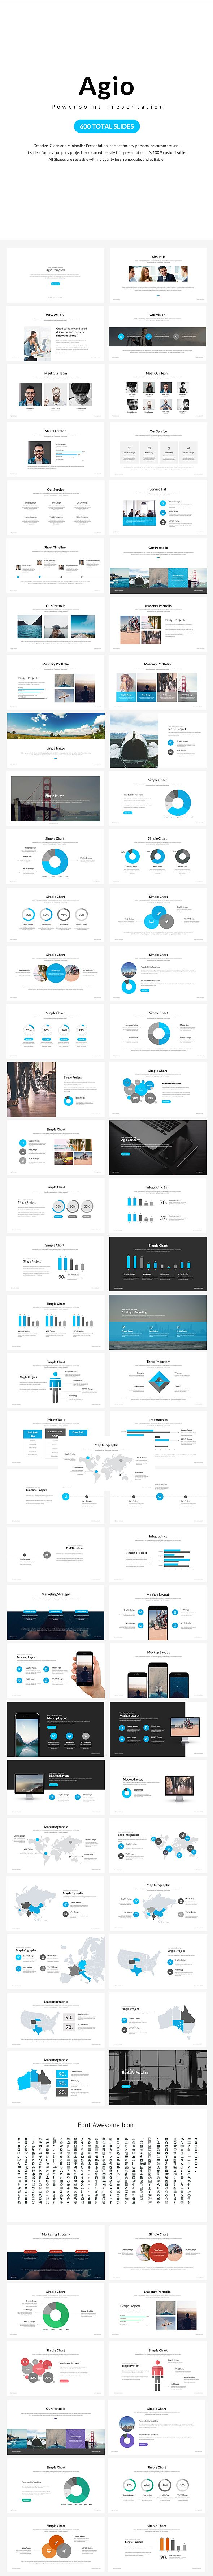 Agio Powerpoint Presentation — Powerpoint PPT #minimal #clear • Download ➝ https://graphicriver.net/item/agio-powerpoint-presentation/19385282?ref=pxcr